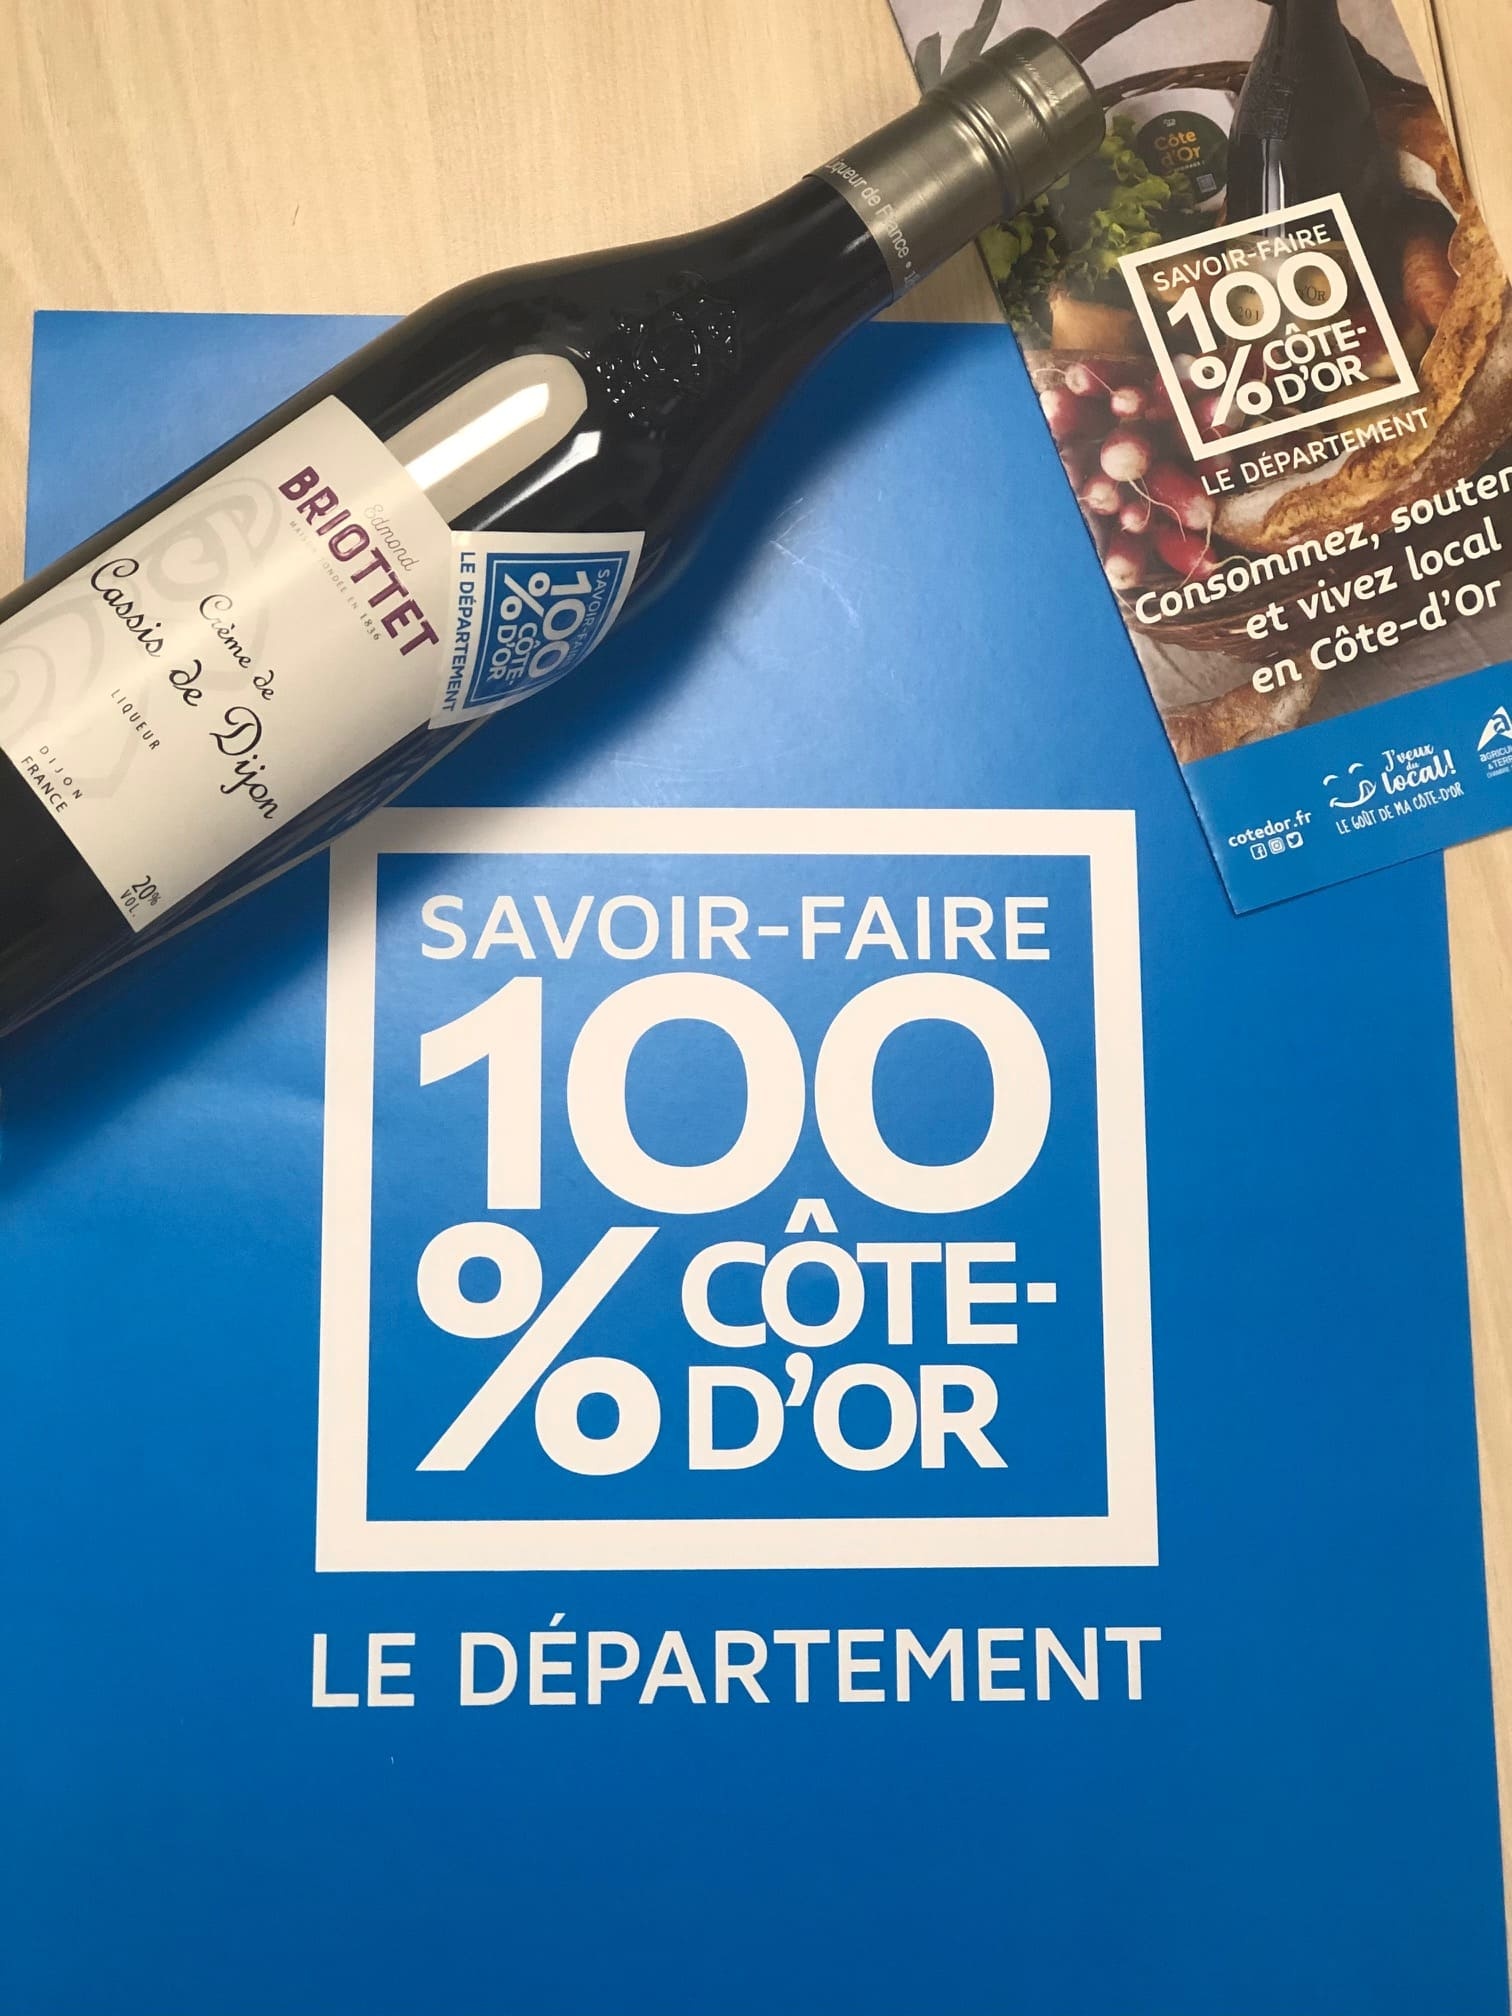 Marque 100% Cote d'Or